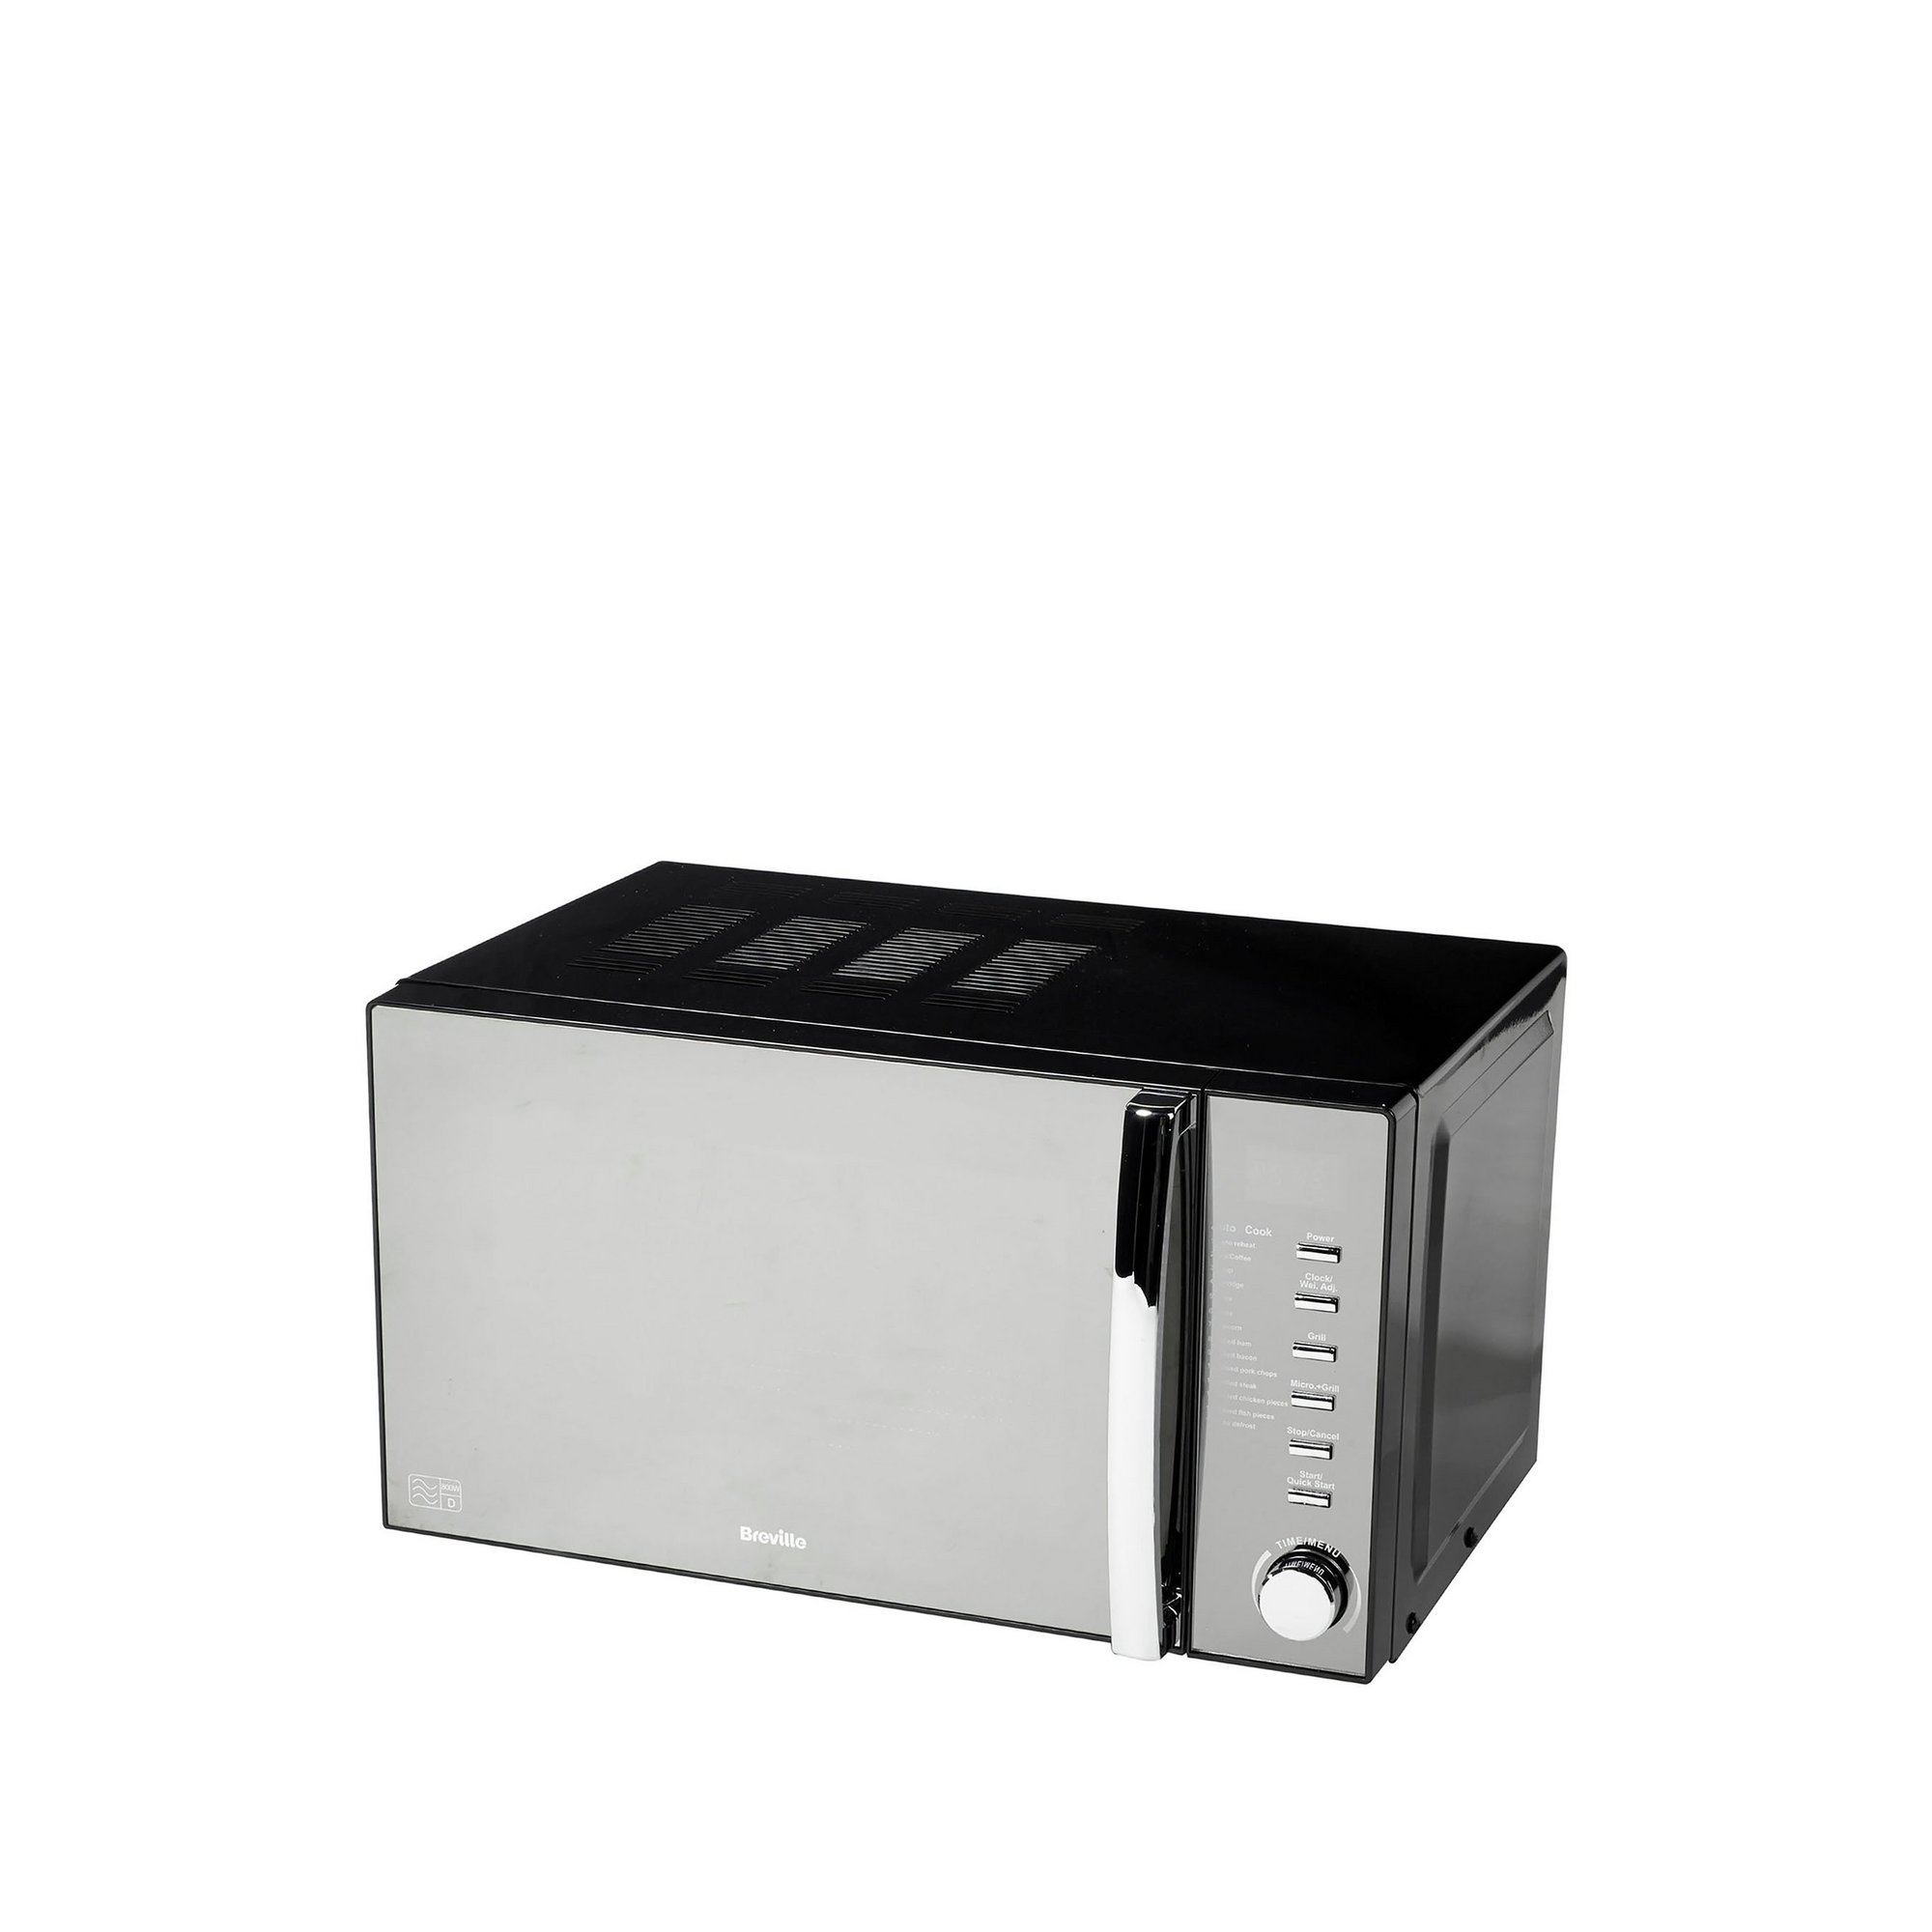 Image of Breville Black 800W Microwave with Grill